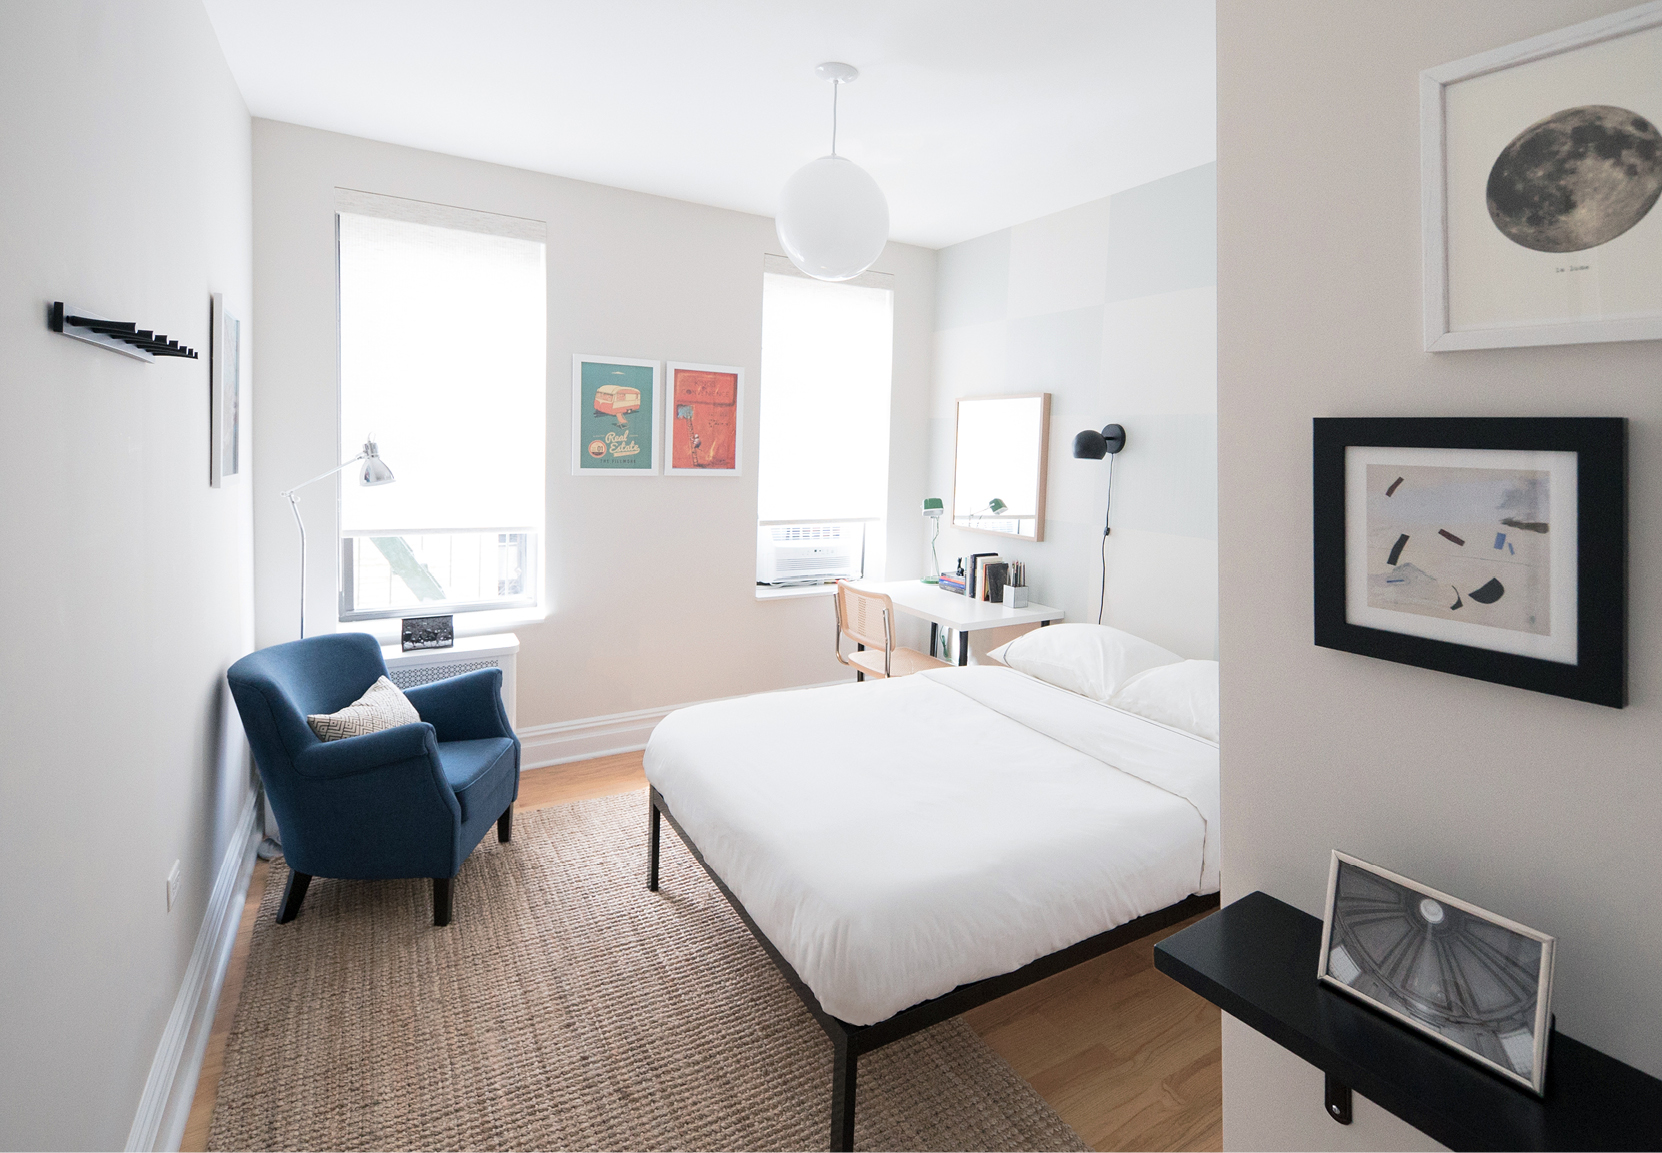 SUN DRENCHED AIRBNB GUEST ROOM